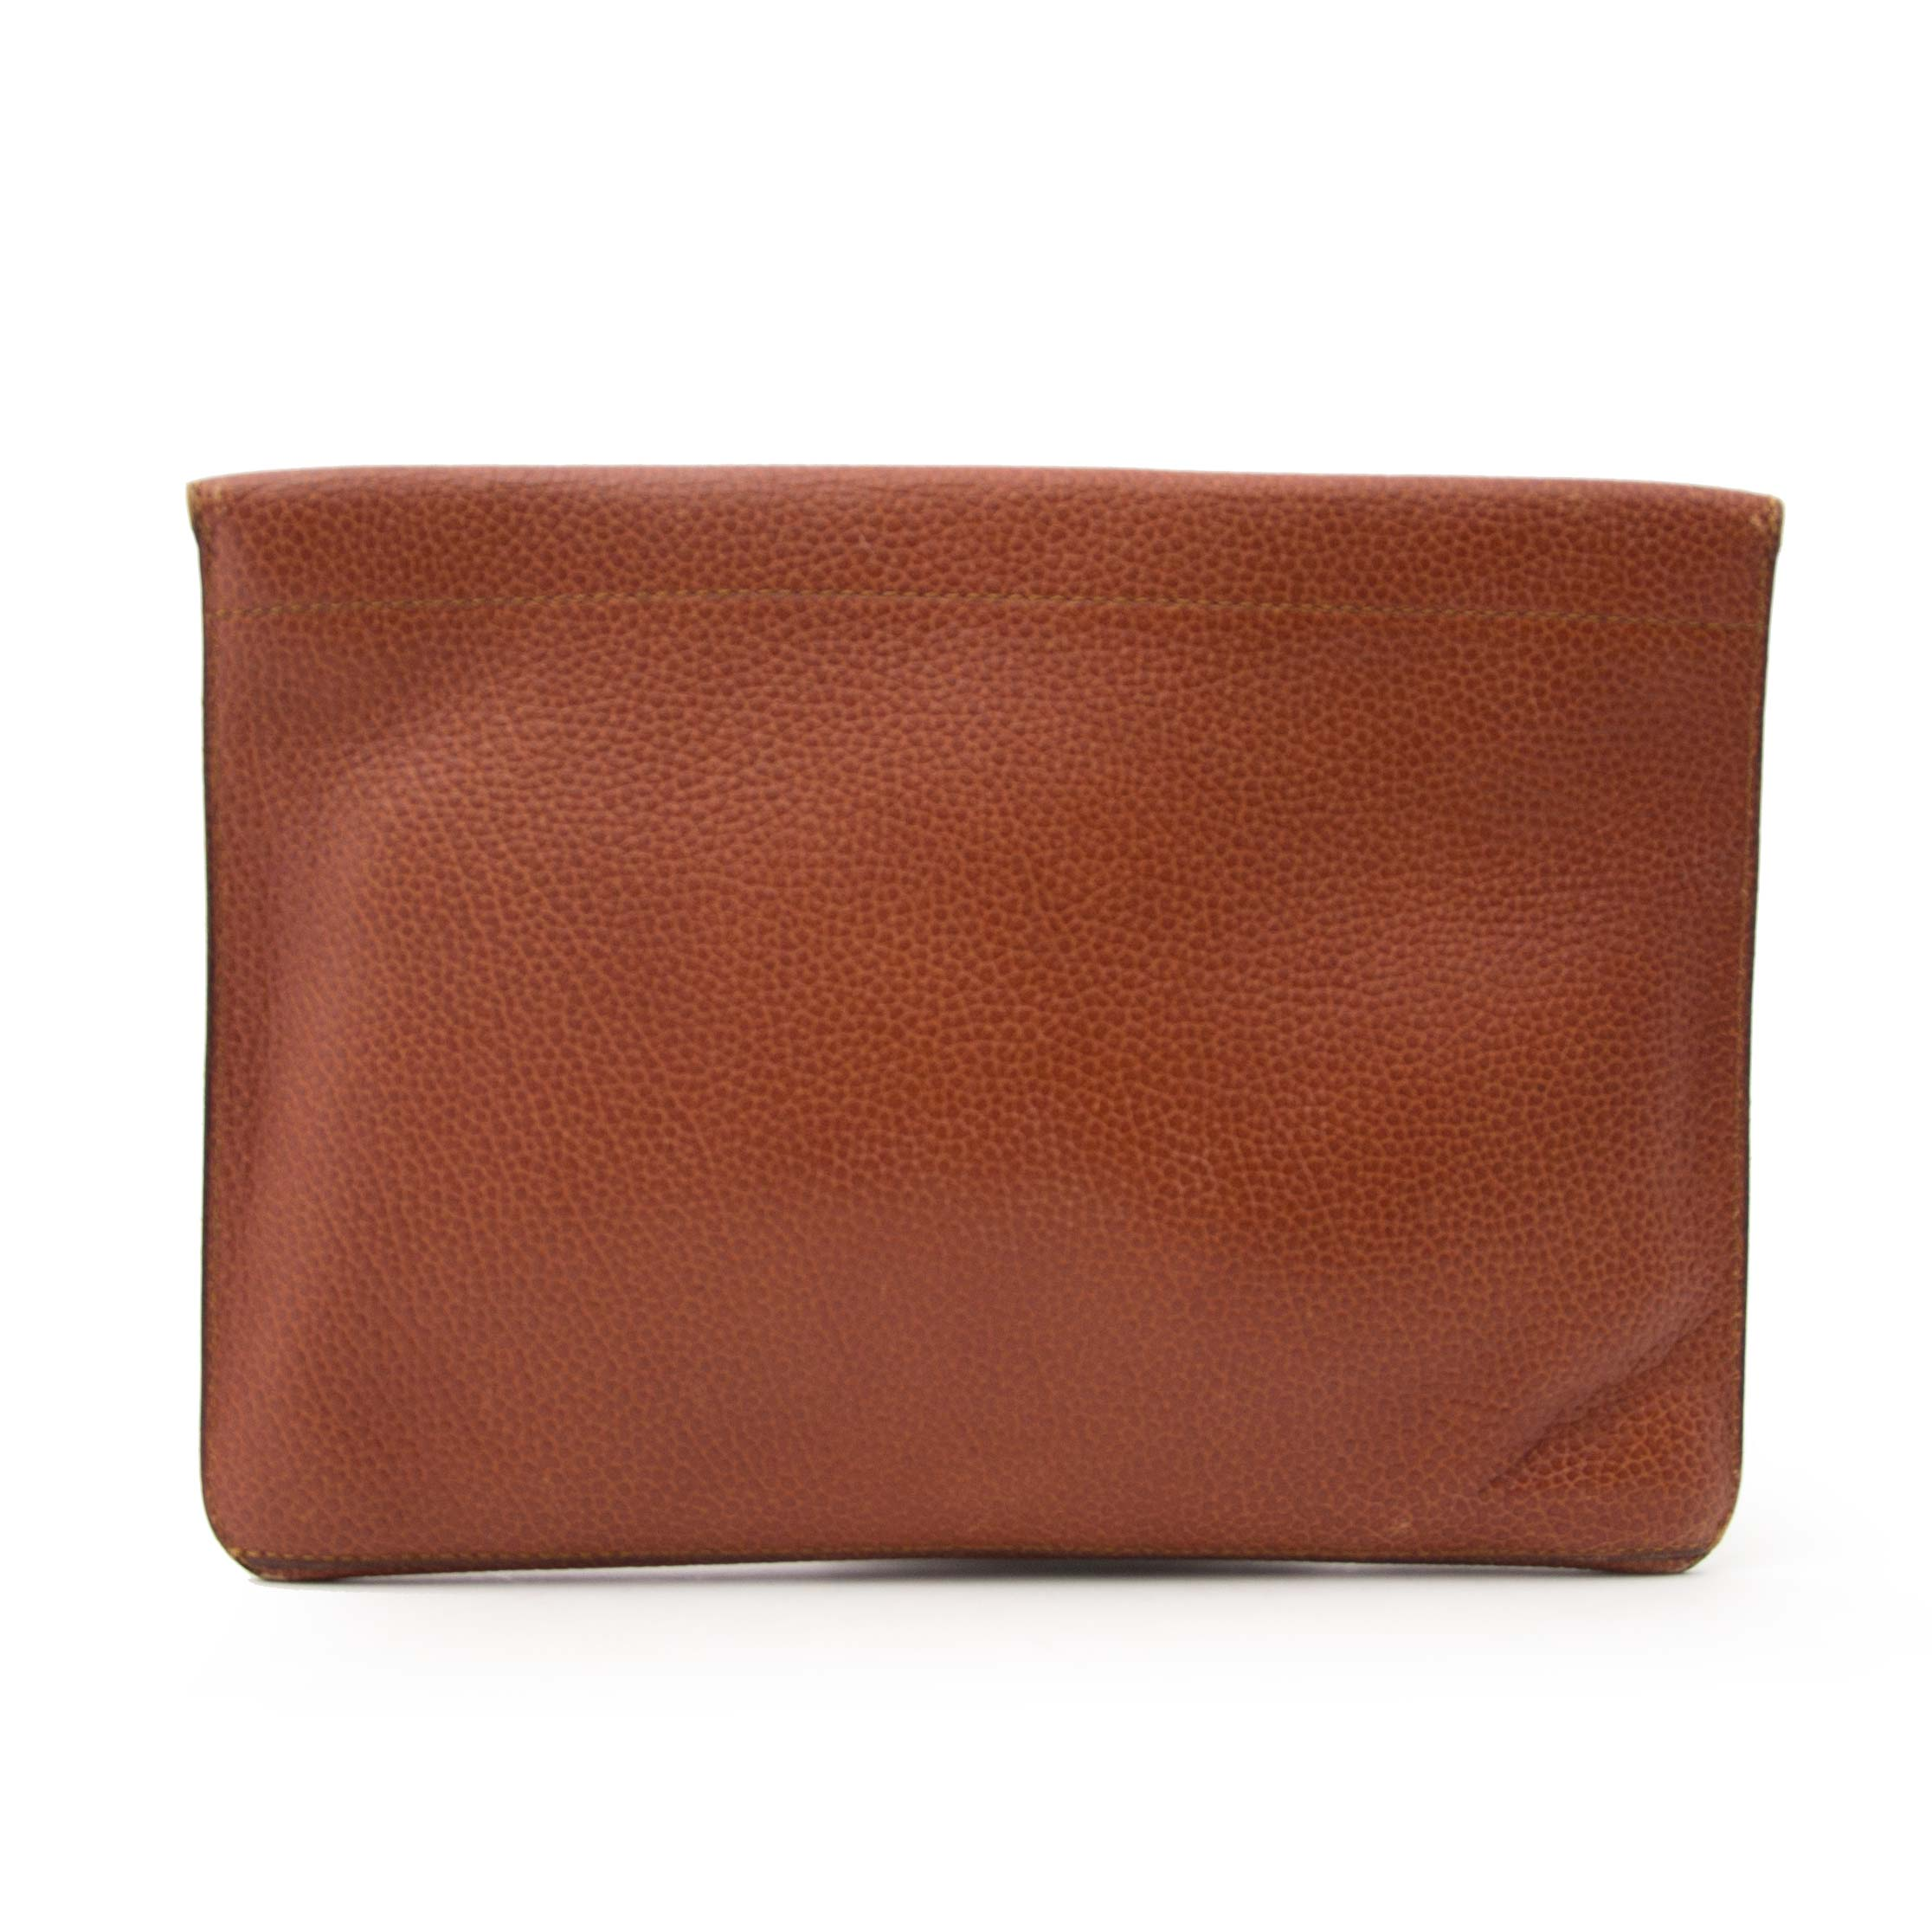 Are you looking for an authentic Delvaux Leather Envelope Clutch?